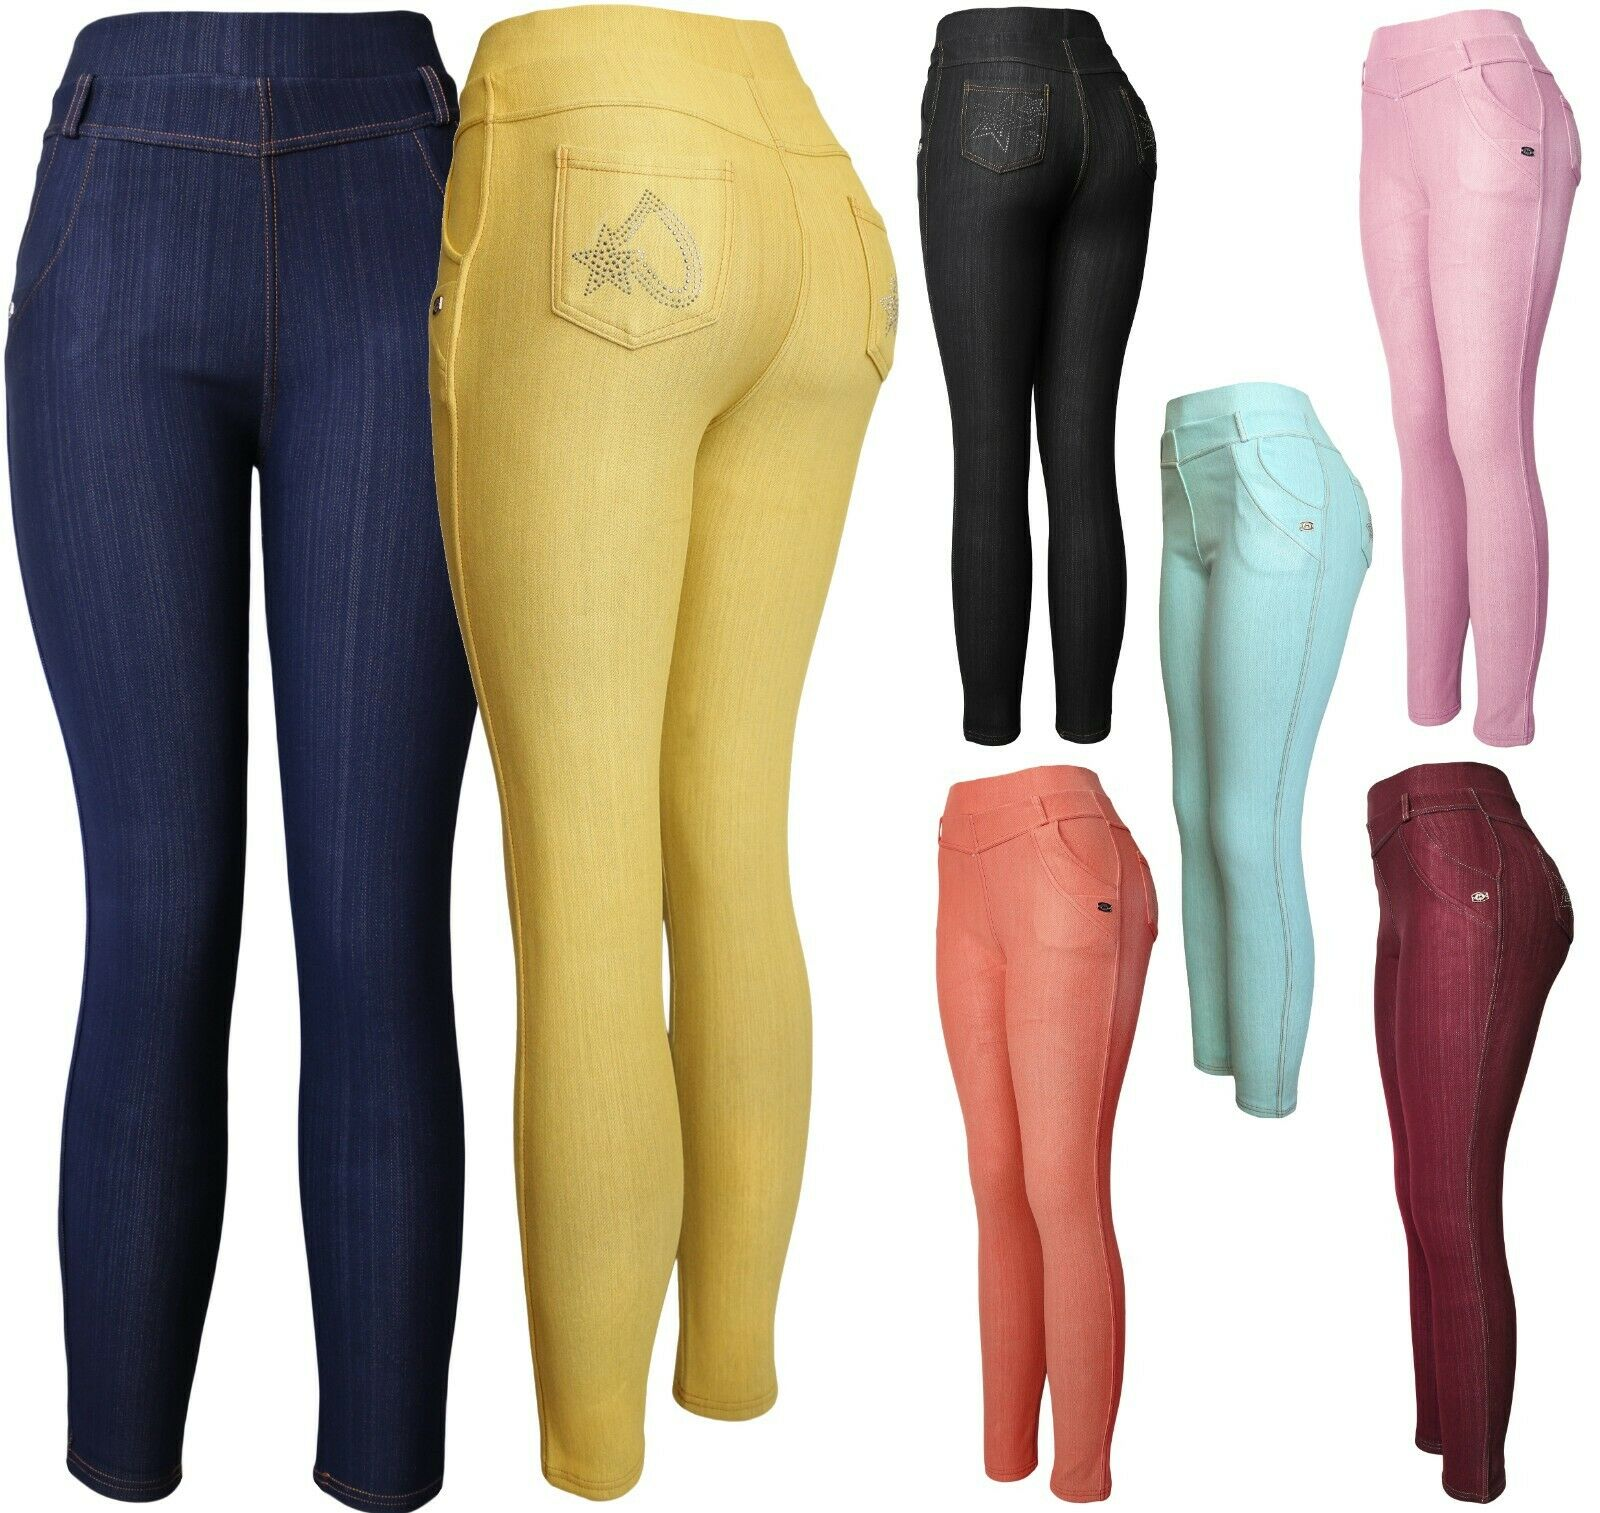 Women's Pull On Stretch Jeggings Pants with Sparkle Clothing, Shoes & Accessories